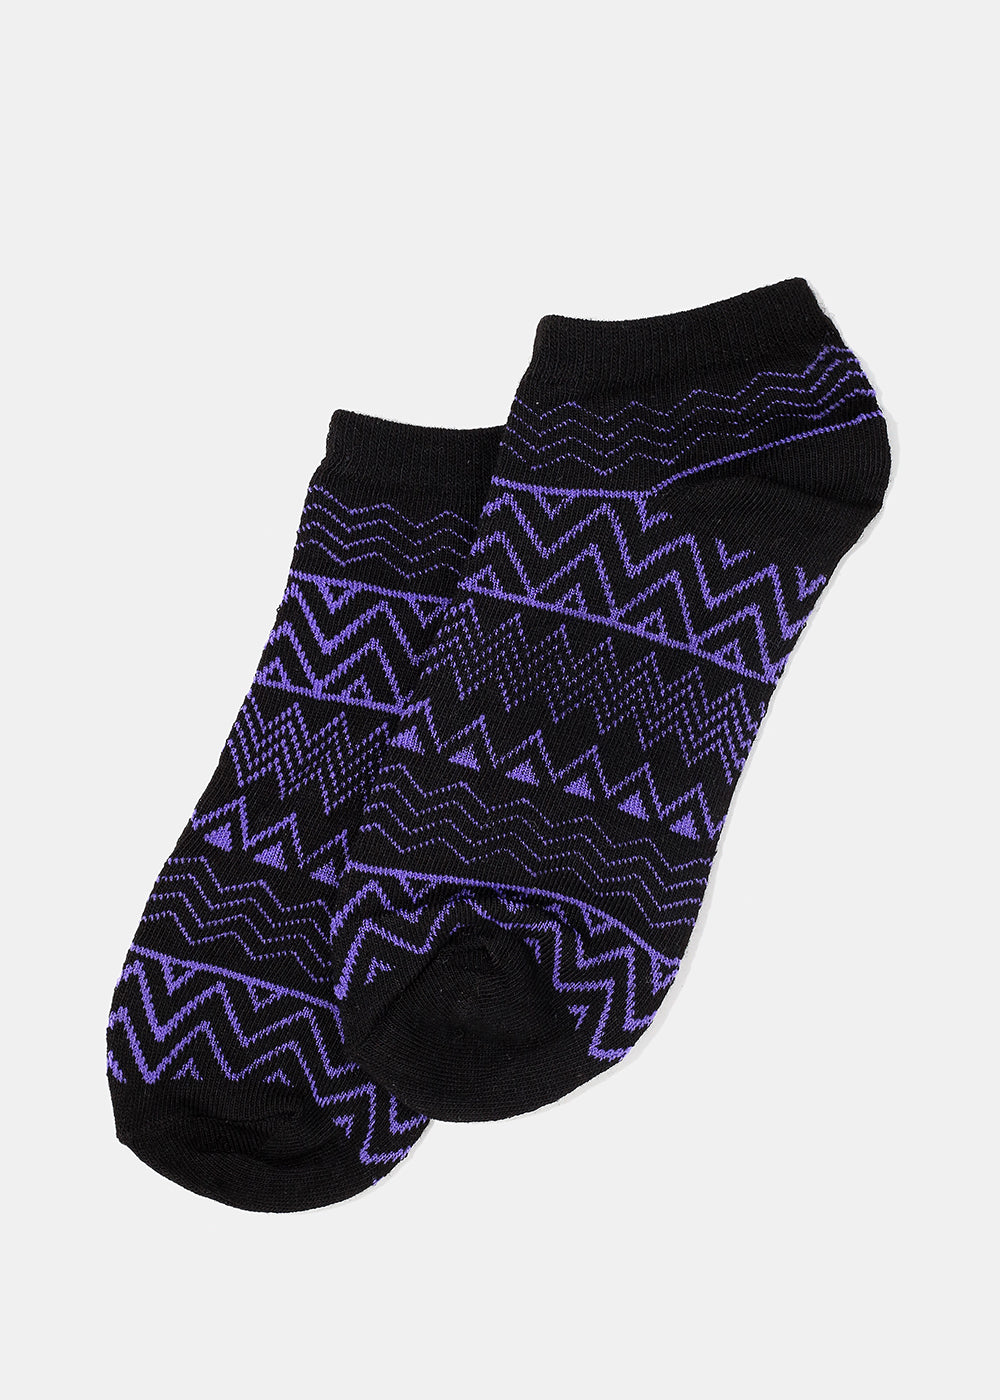 Tribal Print Ankle Socks- Black